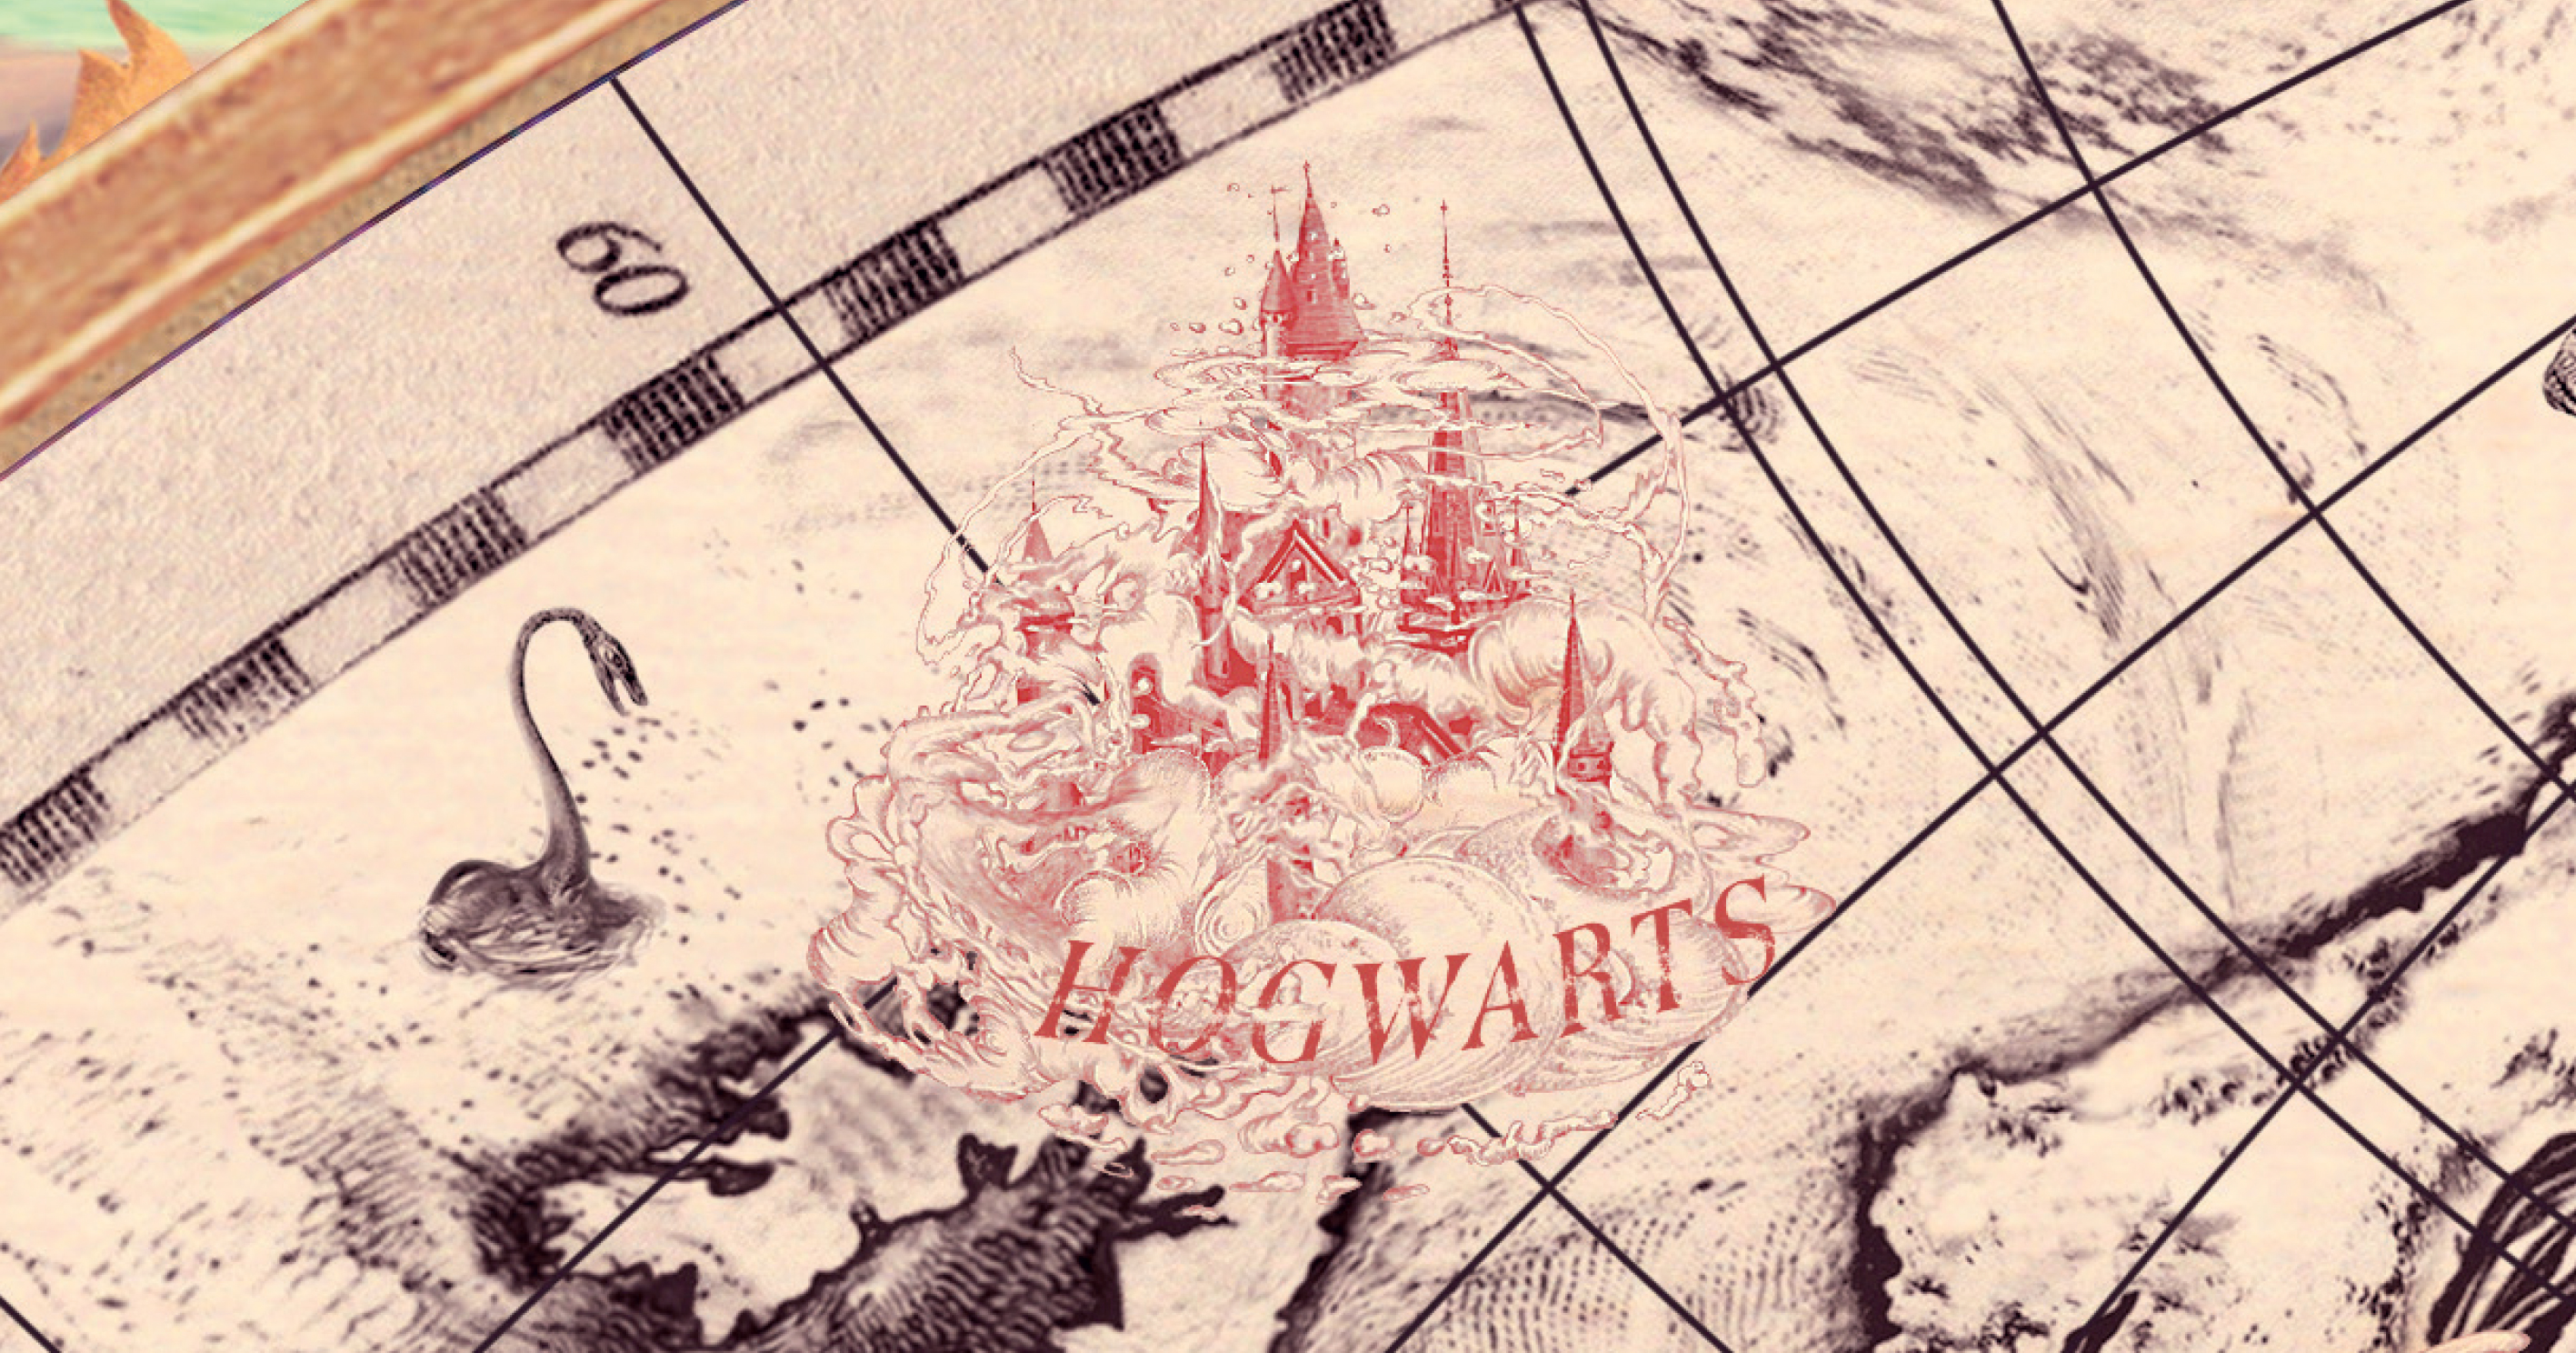 Wizarding School Hogwarts with name